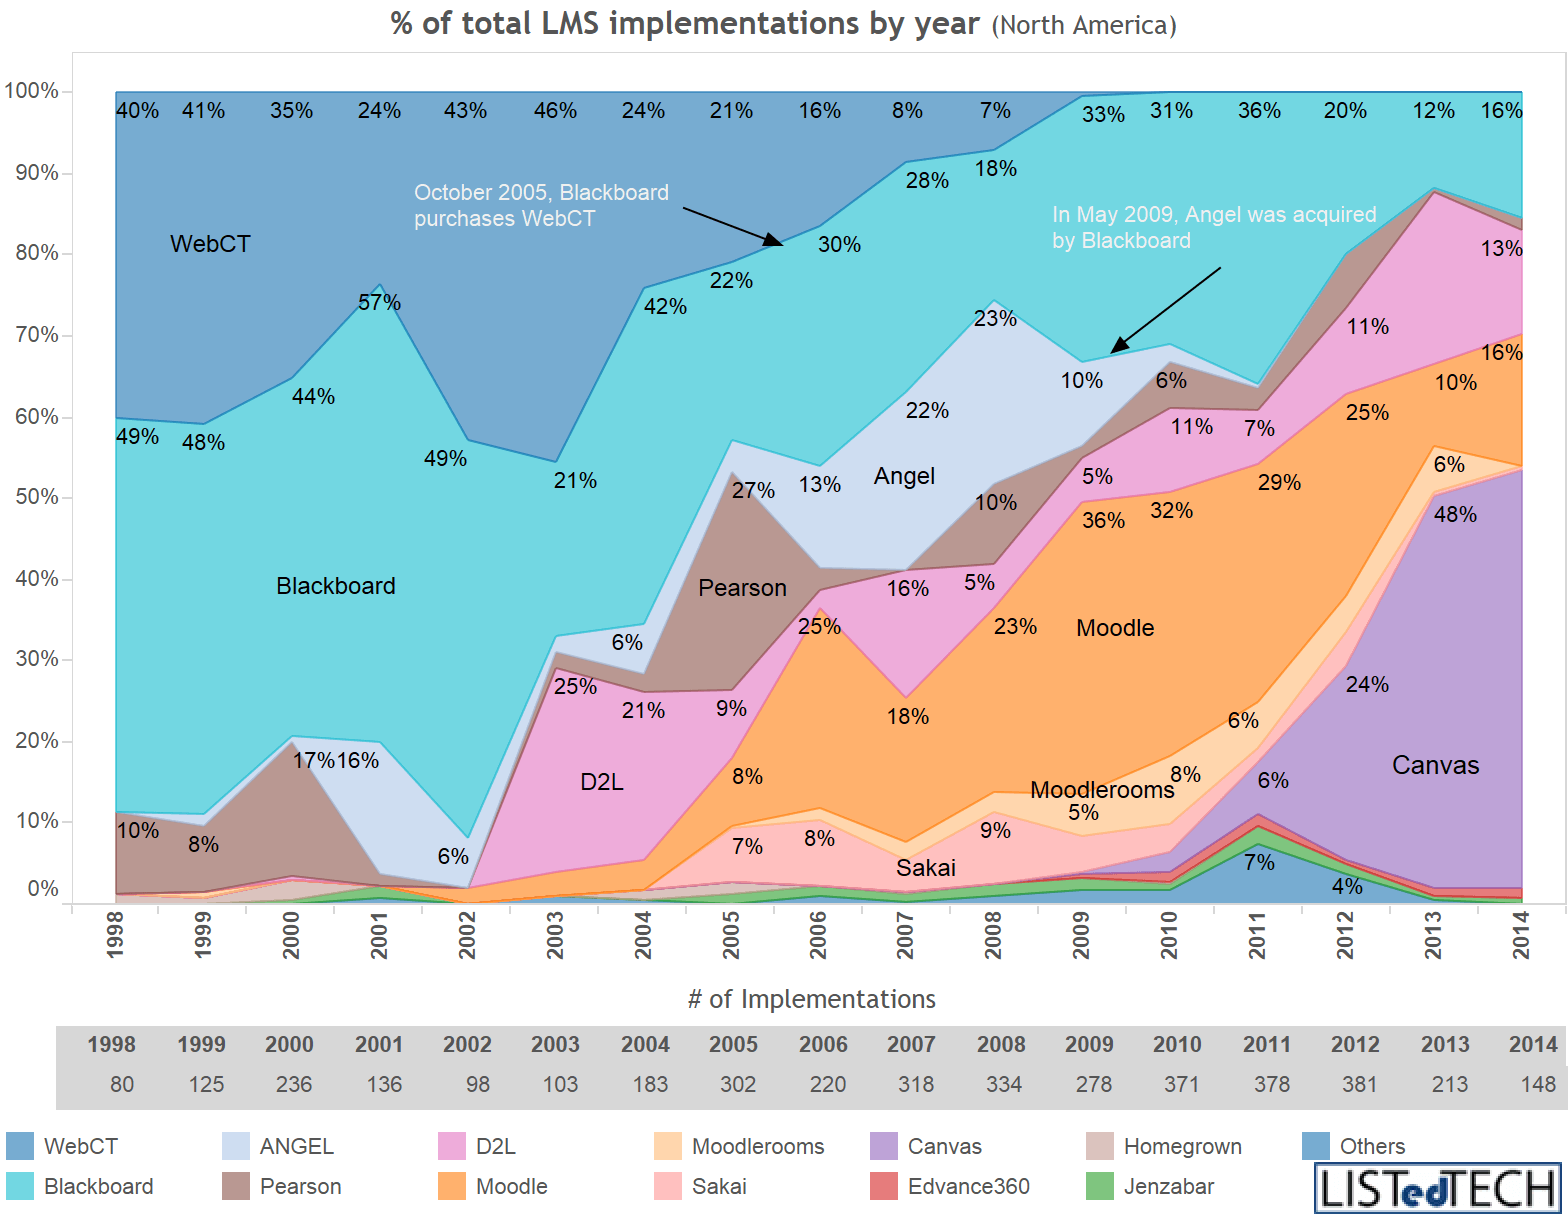 LMS Providers Market Share by Implementation Year